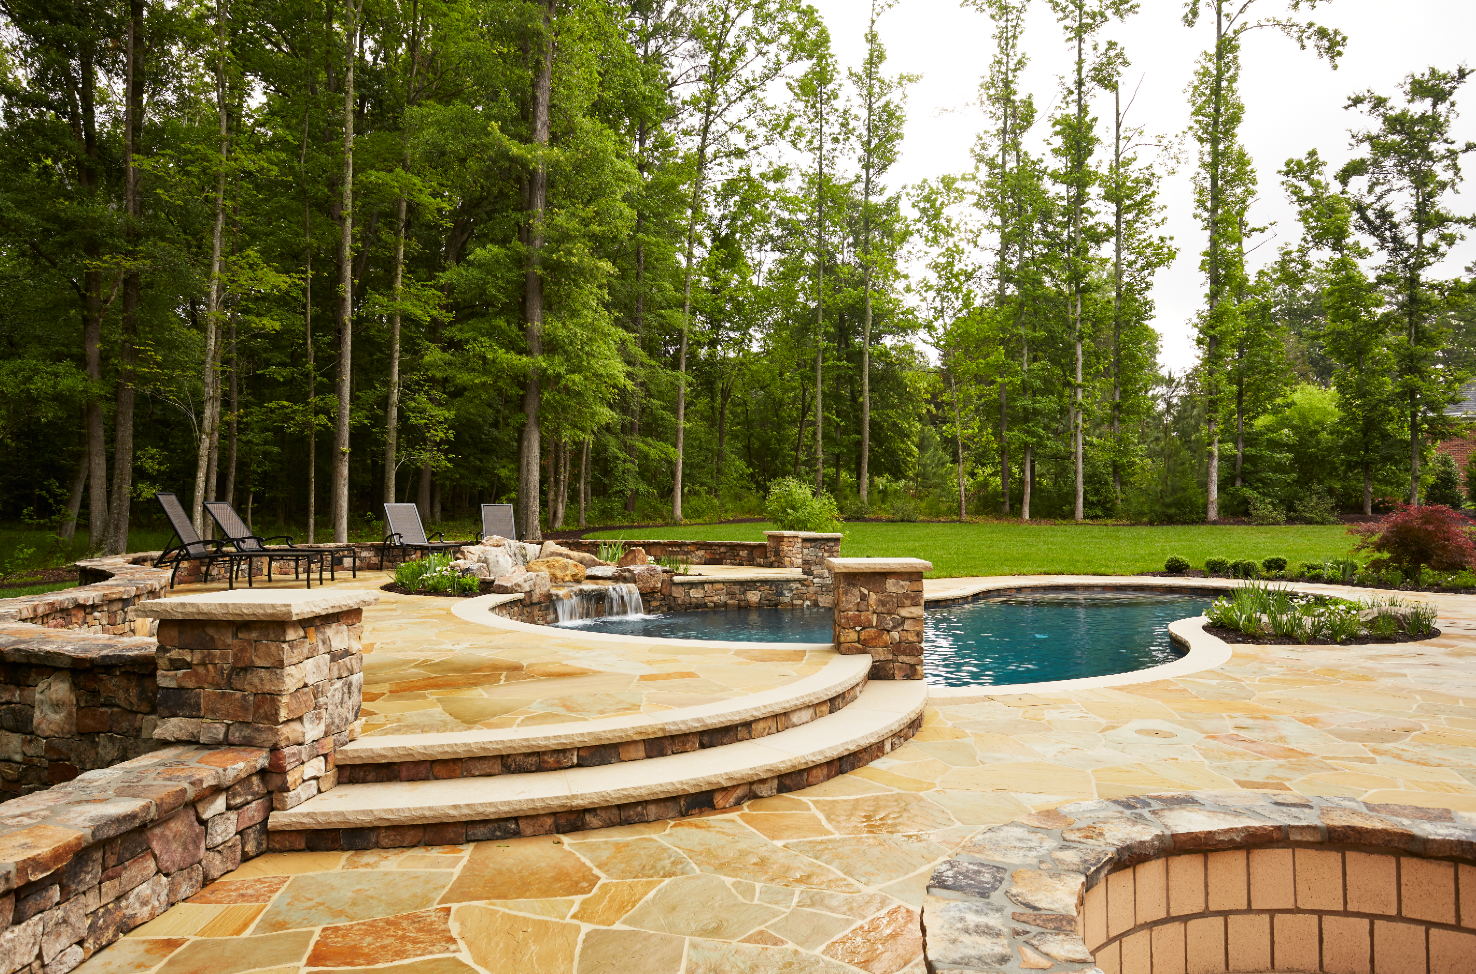 pool with outdoor kitchen cool freeform boulder pool on country estate with contemporary feel builders choice award tudor home outdoor living area with multiple stone waterfall kitchen marcia fryer